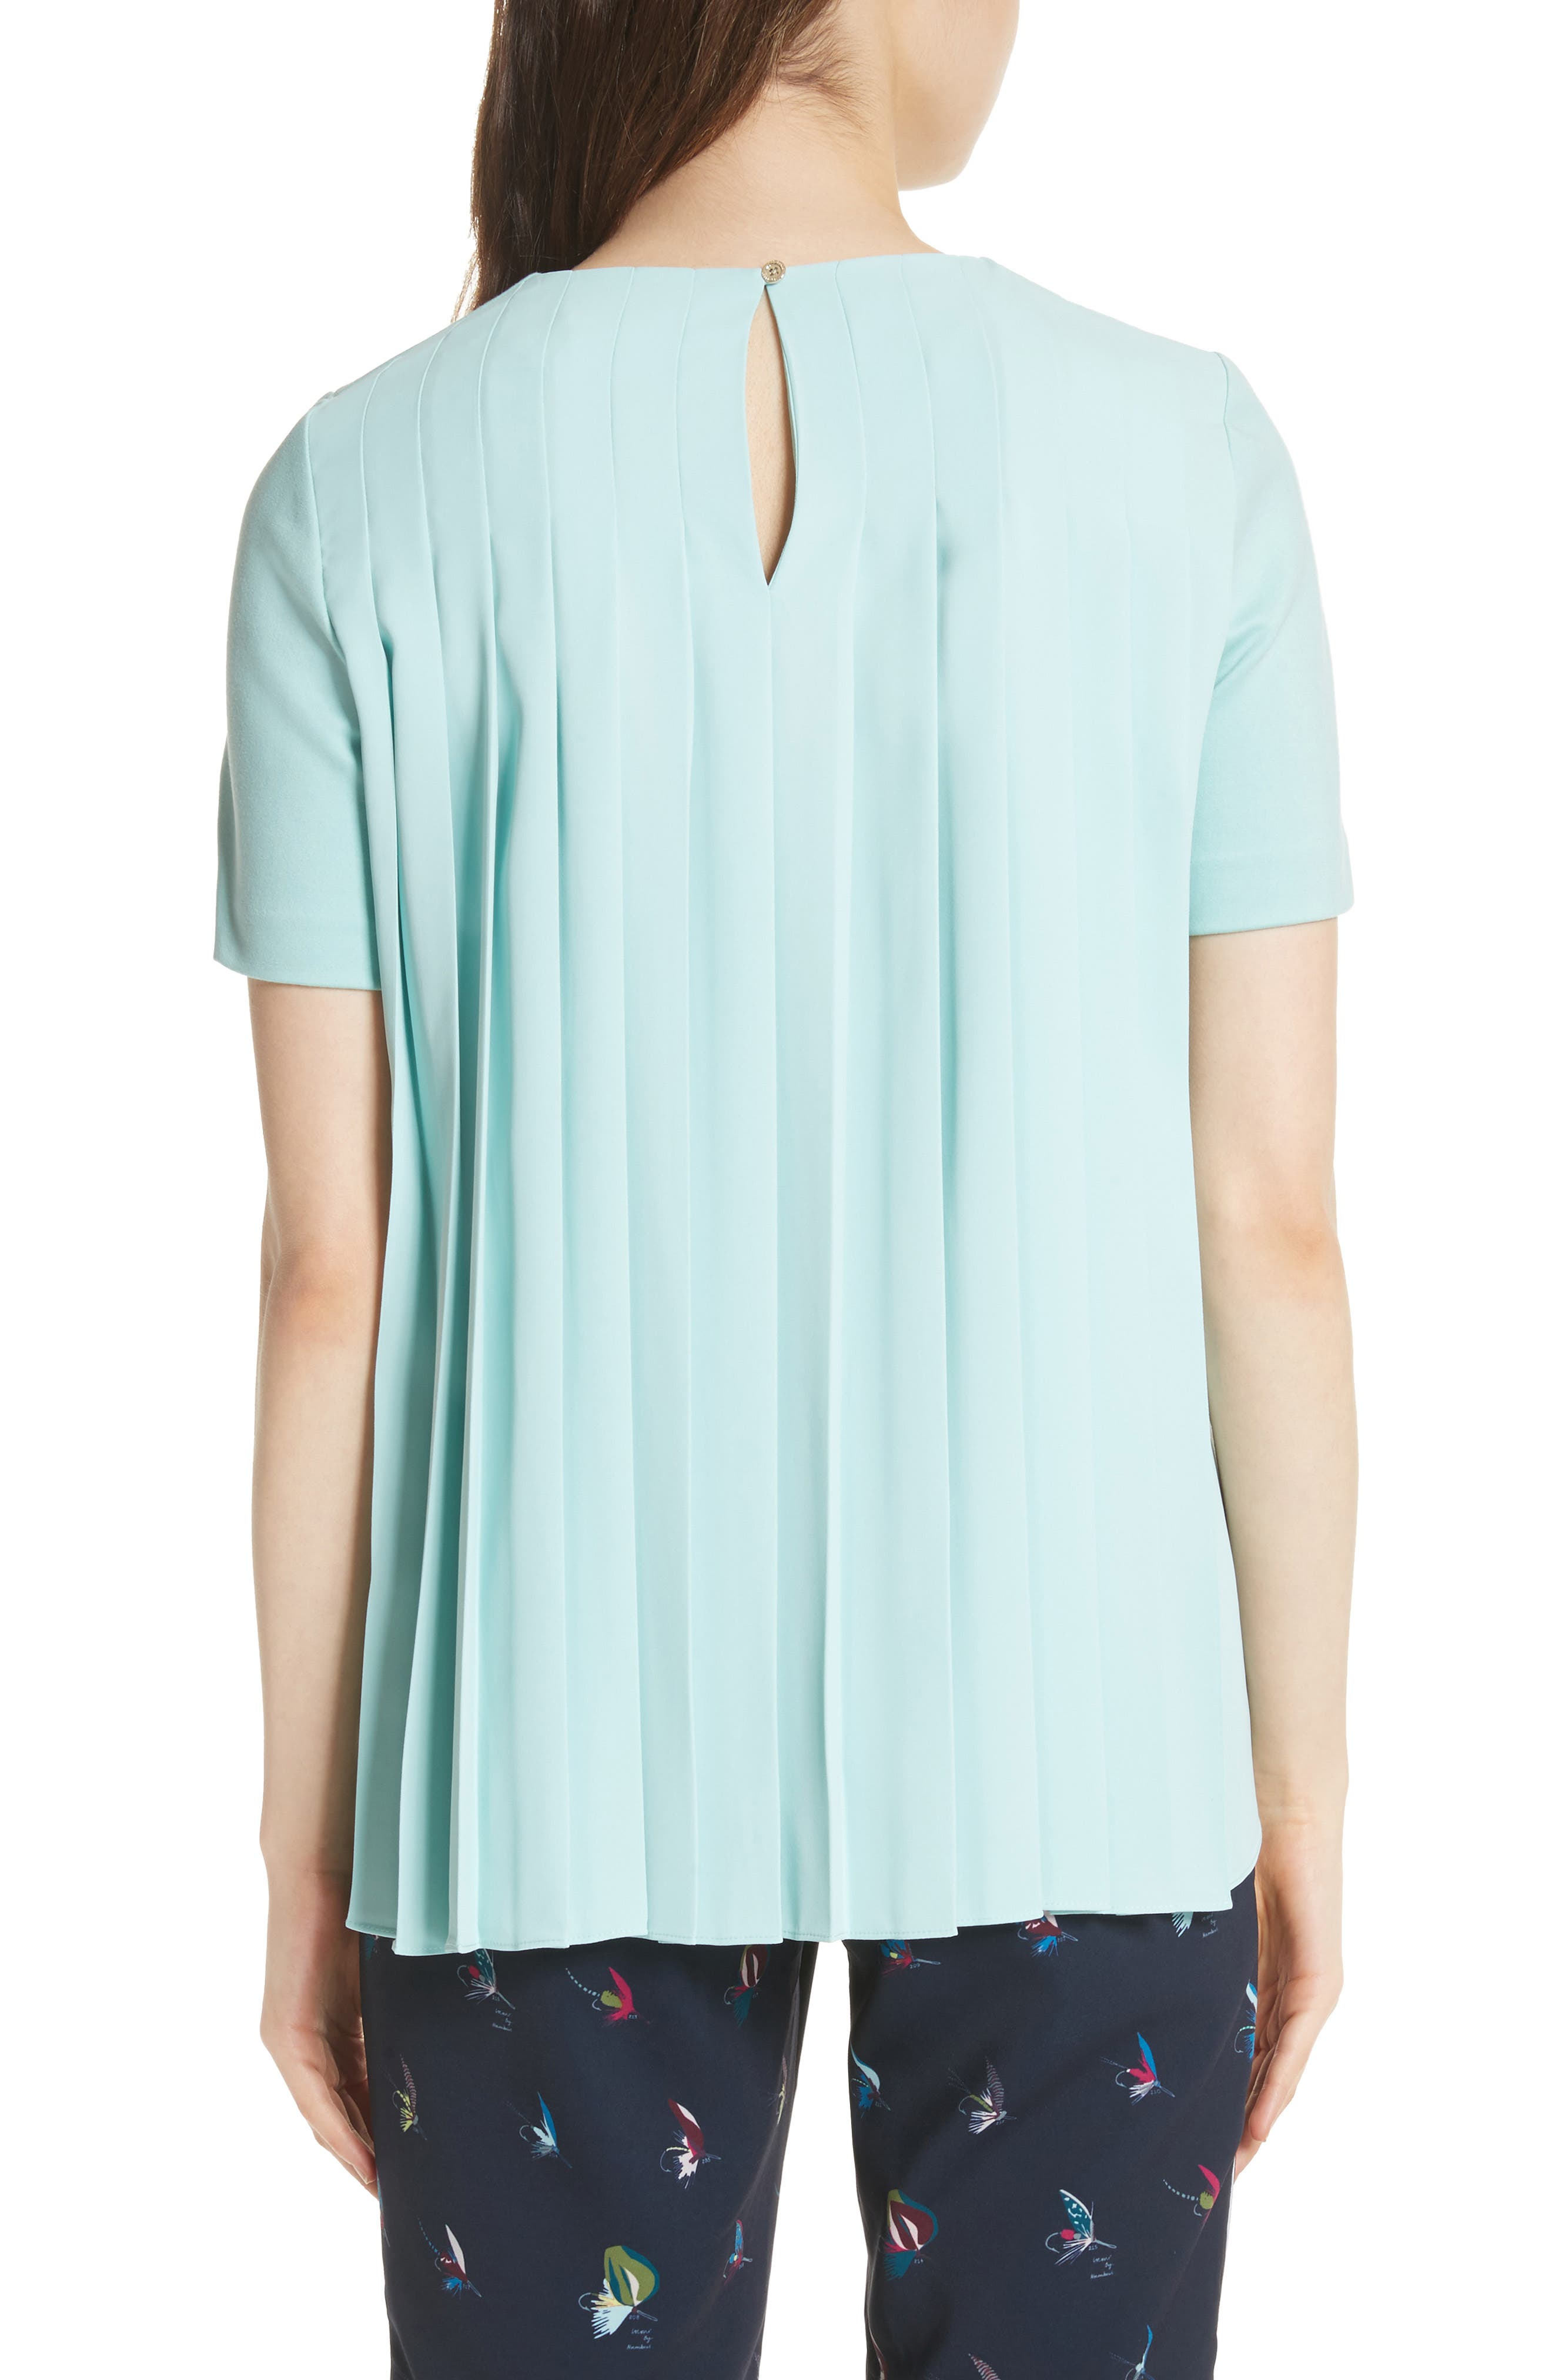 Colour by Numbers Naevaa Pleat Back Top,                             Alternate thumbnail 2, color,                             441